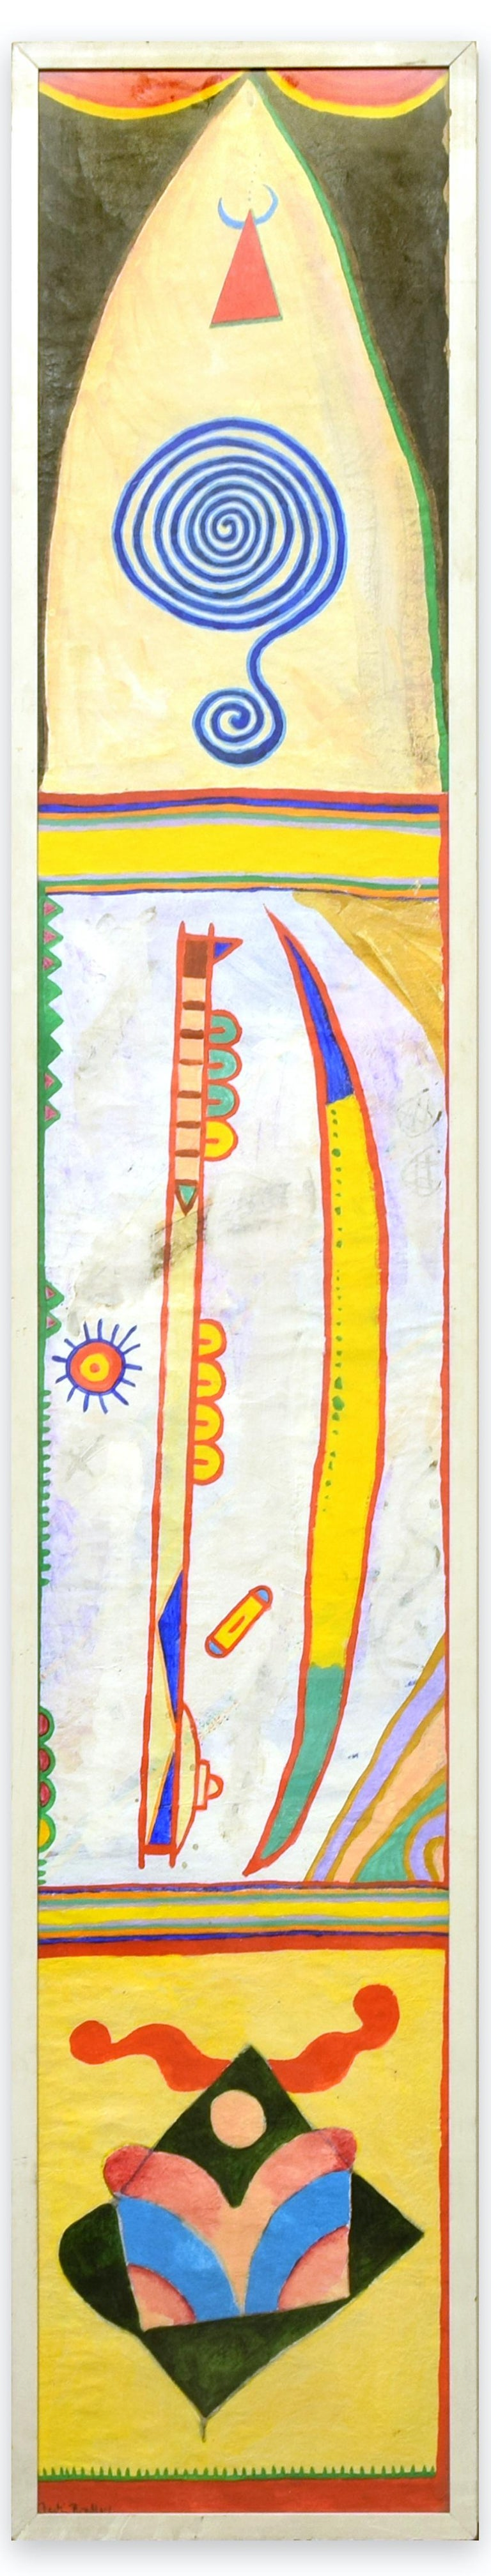 Boomerang is a colored original painting on rice paper realized around 1978 by the English artist Martin Bradley (born 1931).  A beautiful tempera and acrylic painting on rice paper, signed on lower left margin. Untitled.  A beautiful totem